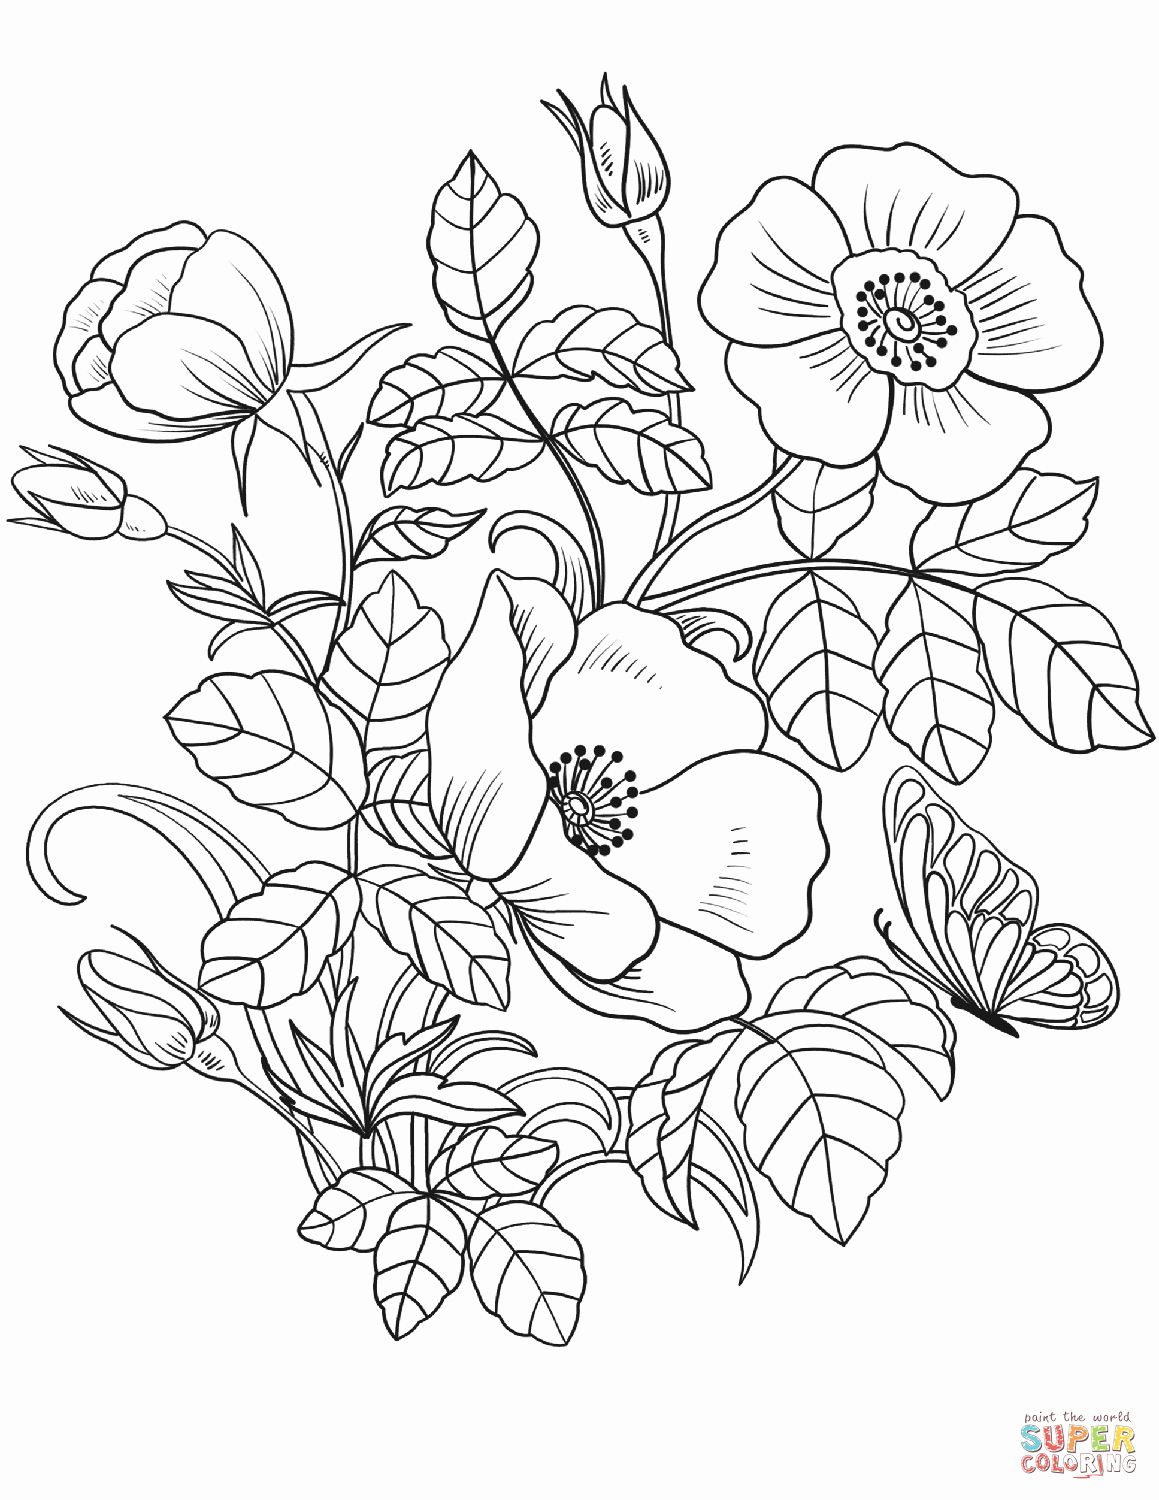 Colouring Alphabet Exercises Pdf Coloring Pages Gallery In 2020 Flower Coloring Sheets Spring Coloring Sheets Spring Coloring Pages